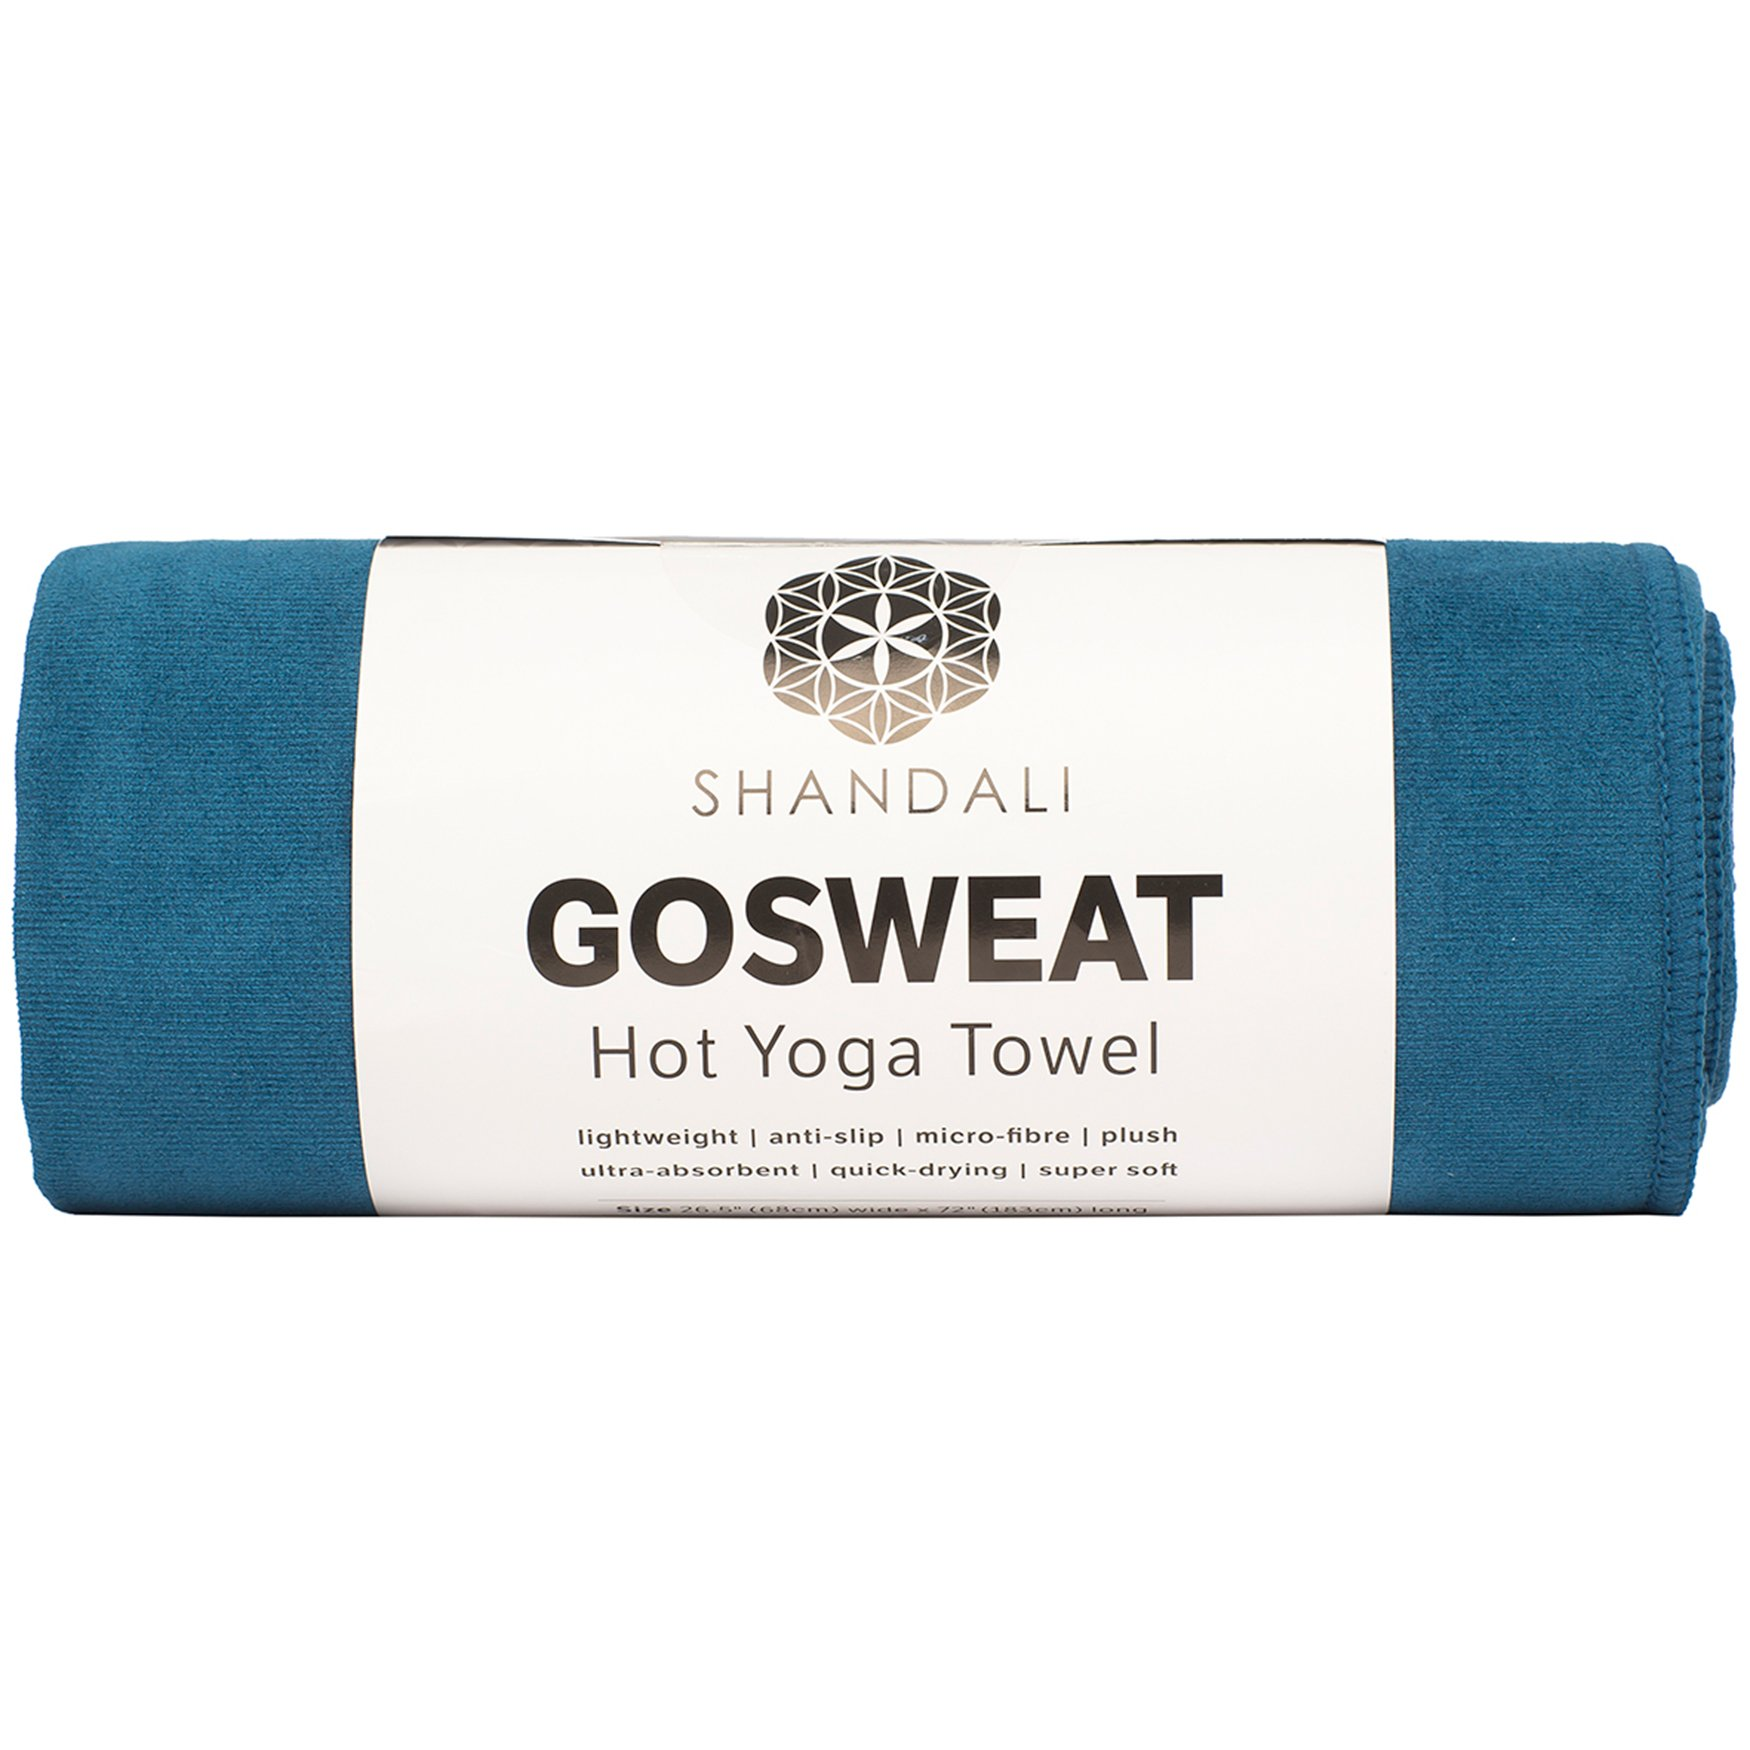 Shandali Hot Yoga GoSweat Microfiber Hand Towel in Super Absorbent Premium Evening Blue Suede for Bikram, Pilates, Gym, and Outdoor Sports. 16 x 26.5 inches. by Shandali